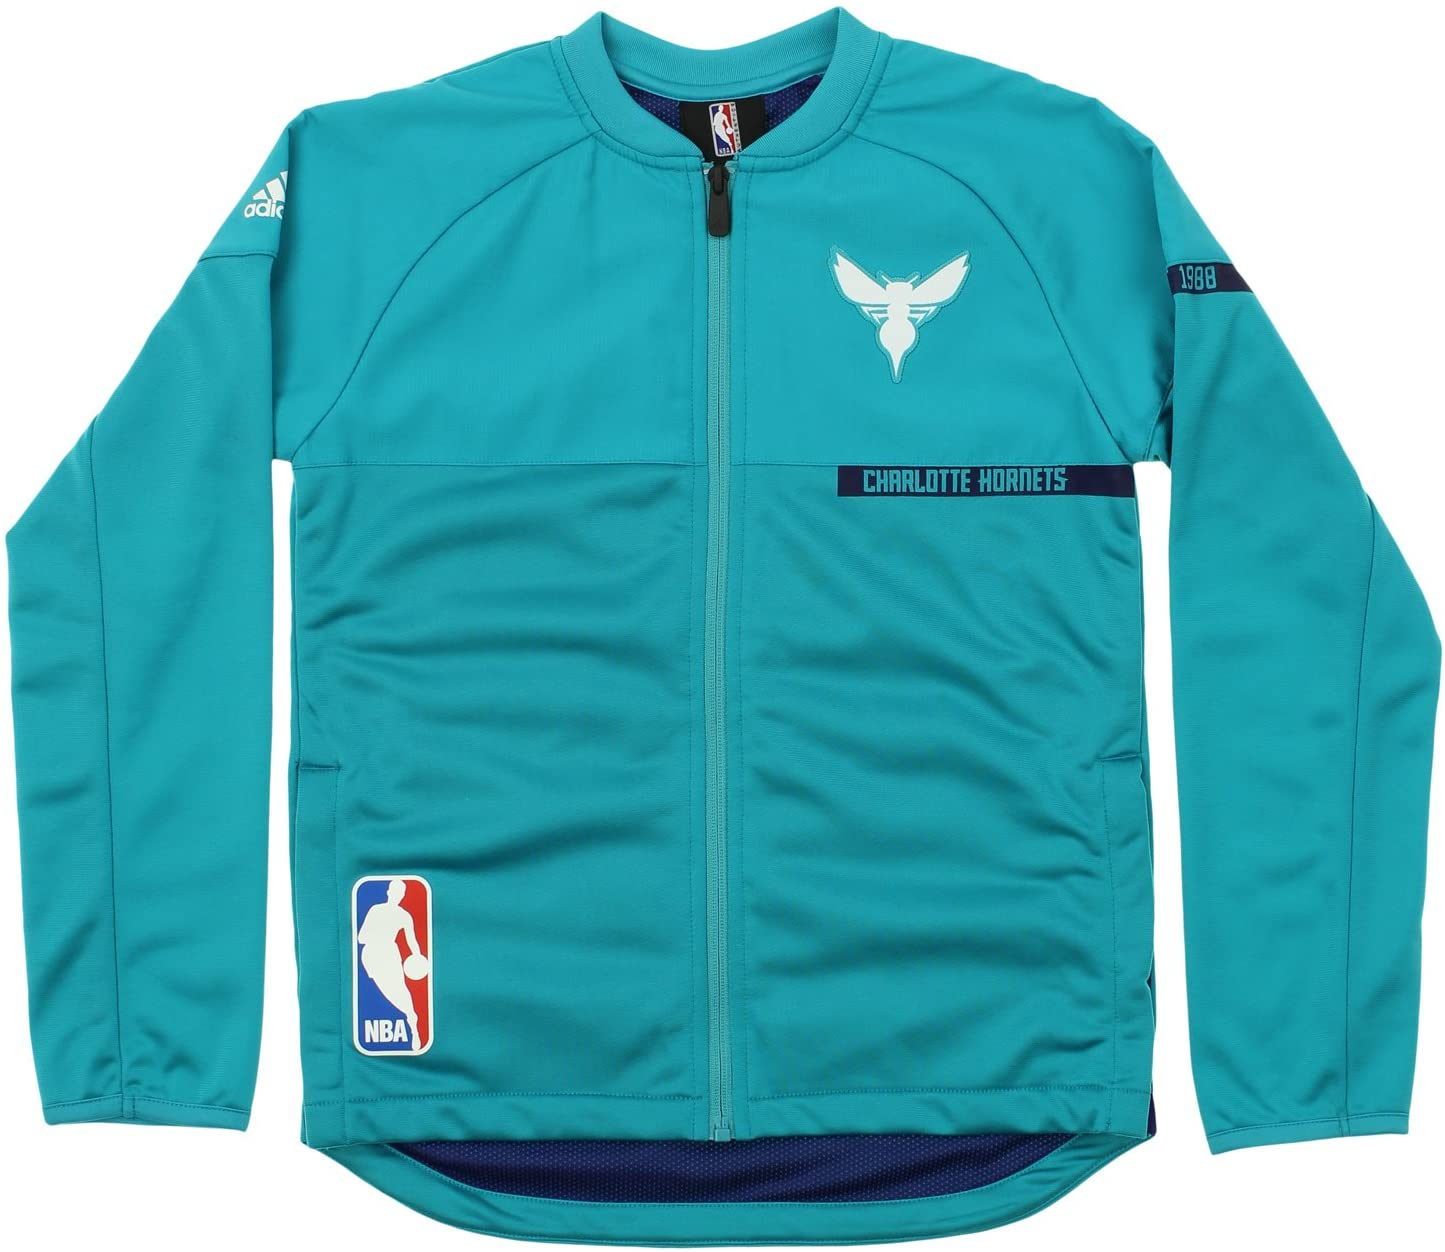 Outerstuff NBA Youth Boys On Court Jacket, Team Options